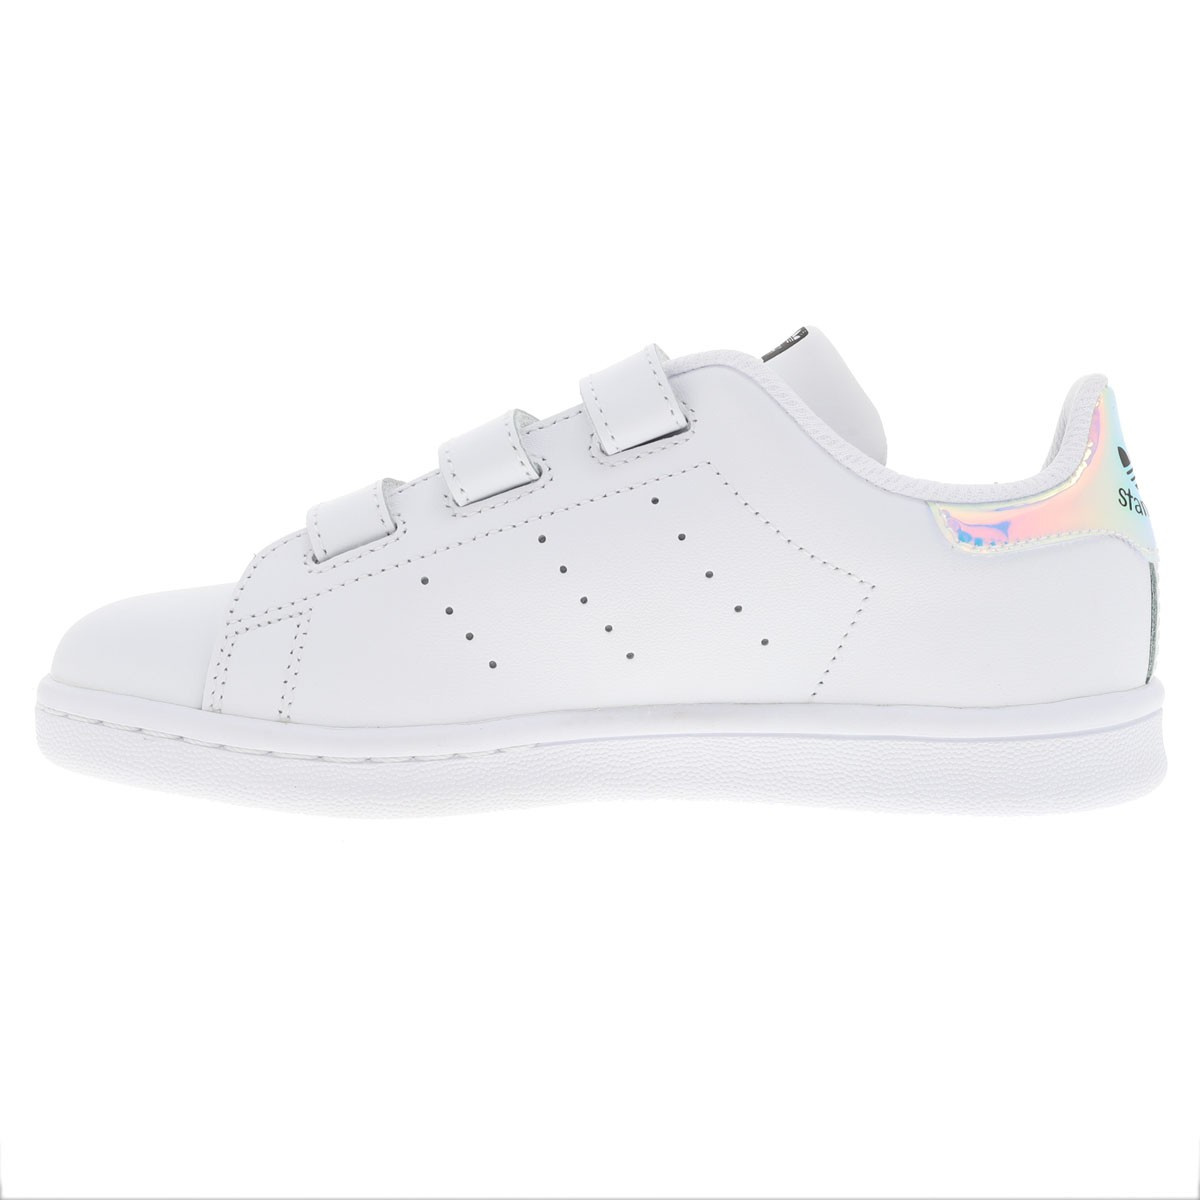 Baskets Fille Gris Adidas Mode Stan Smith Ccv 0qEZn0rz